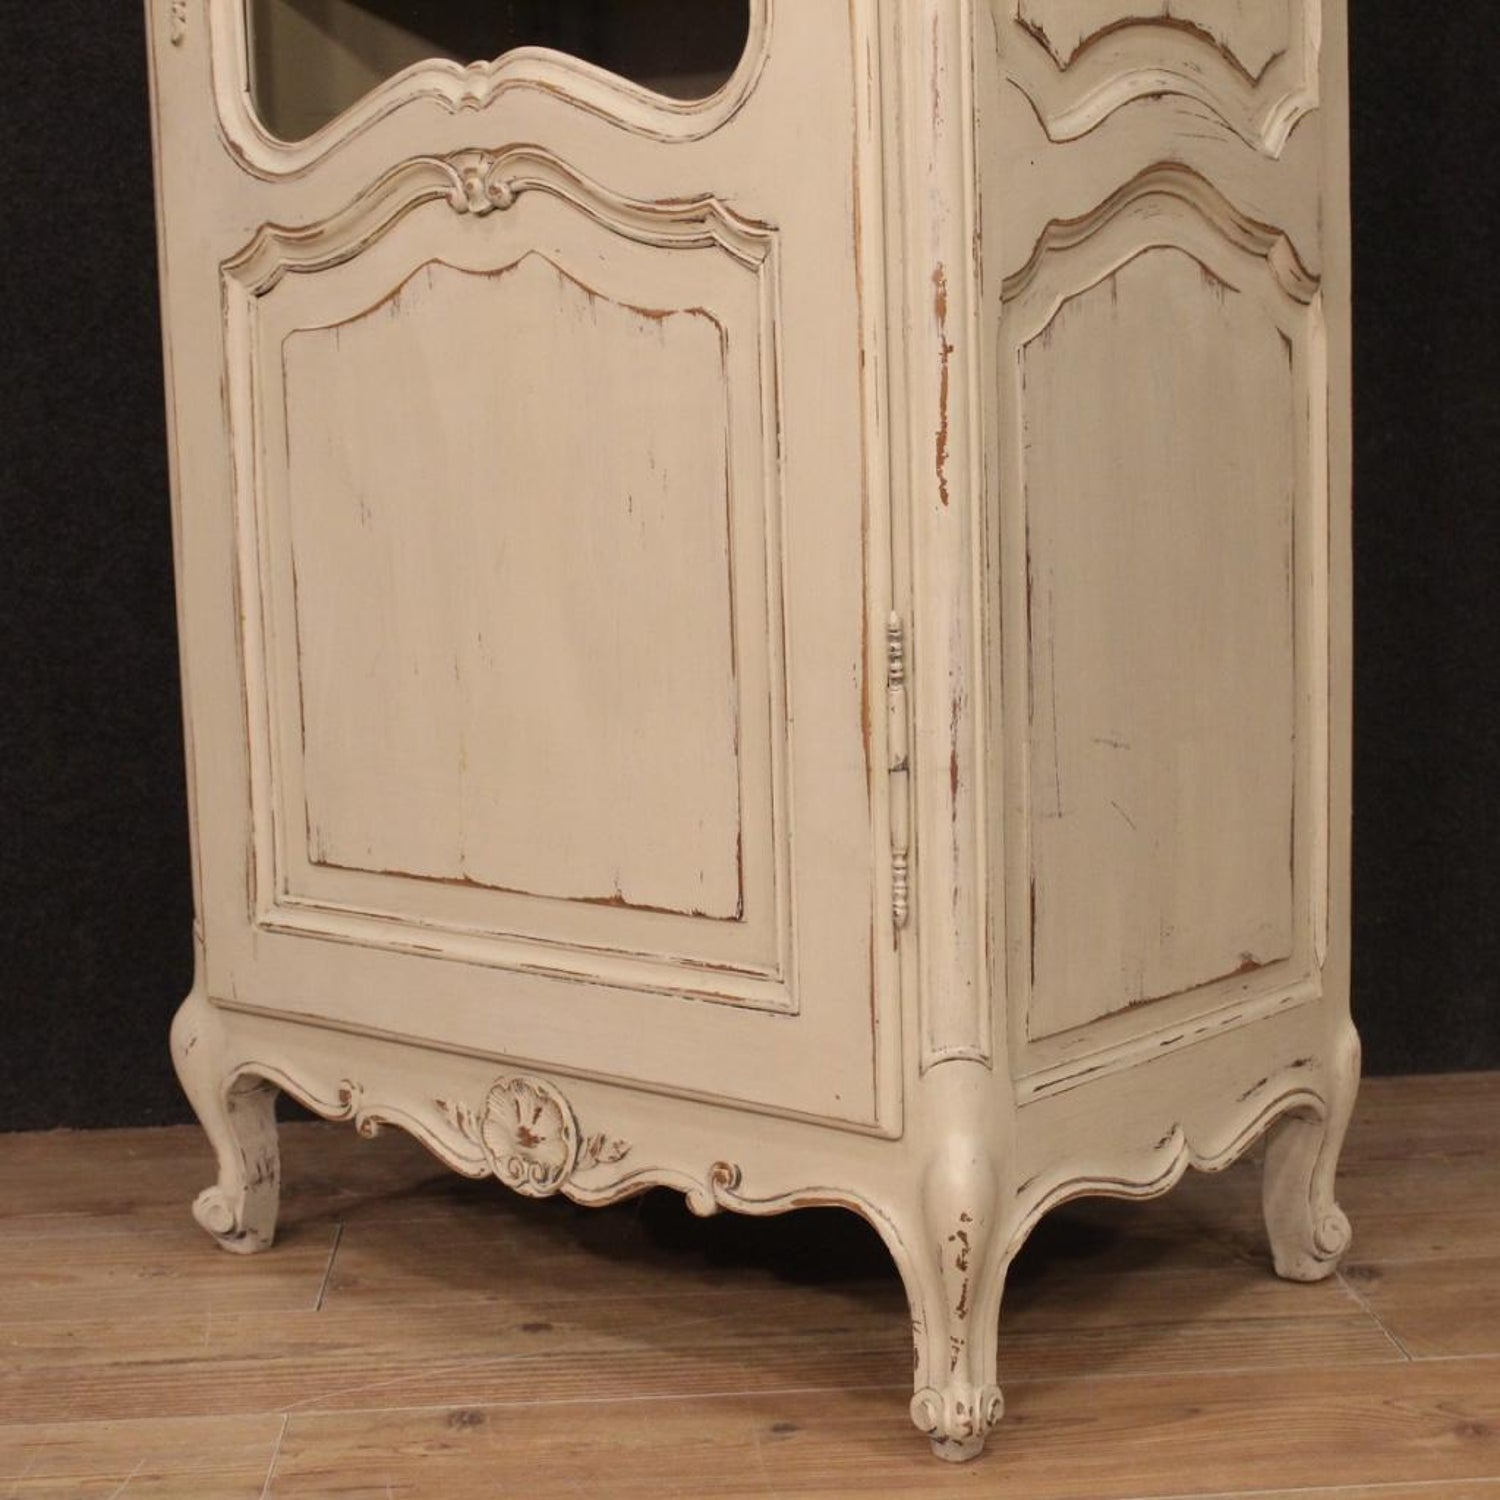 20th Century Lacquered Wood Shabby Chic French Vitrine Display